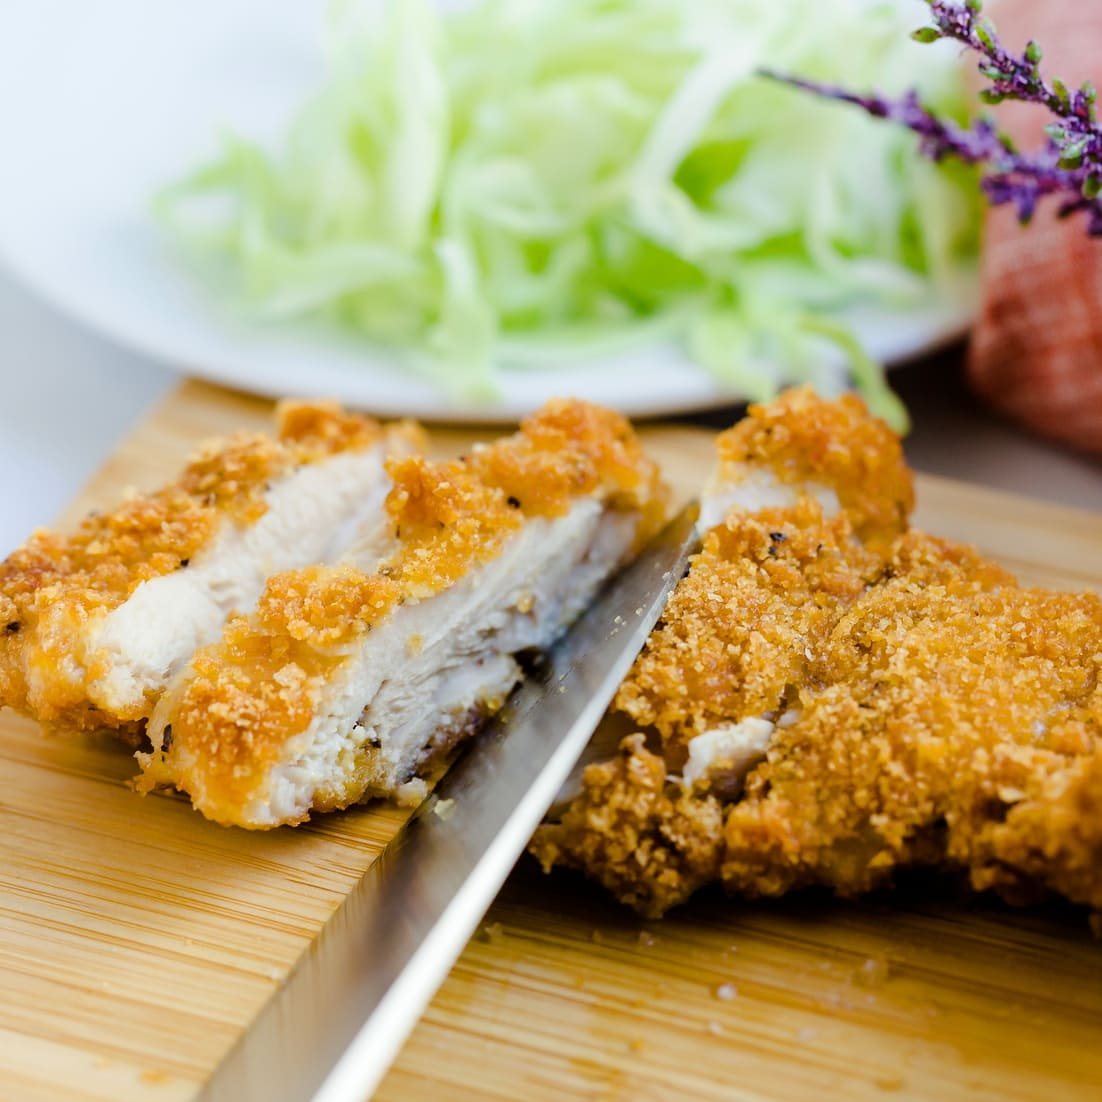 Air Fried Japanese Chicken Cutlet being cut into slices